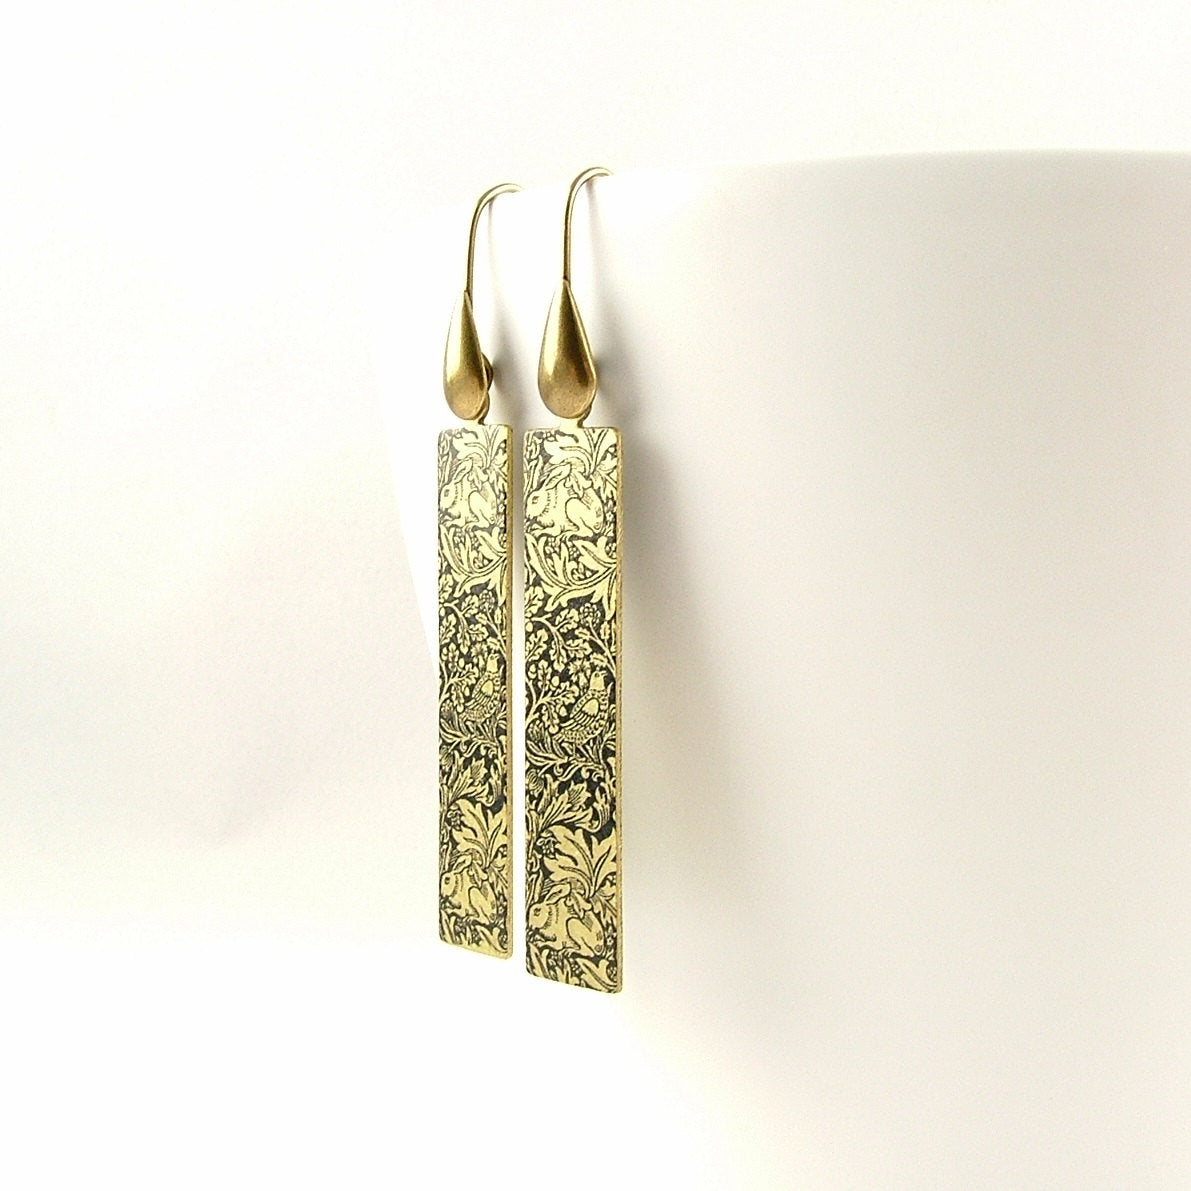 William Morris Brer Rabbit Earrings